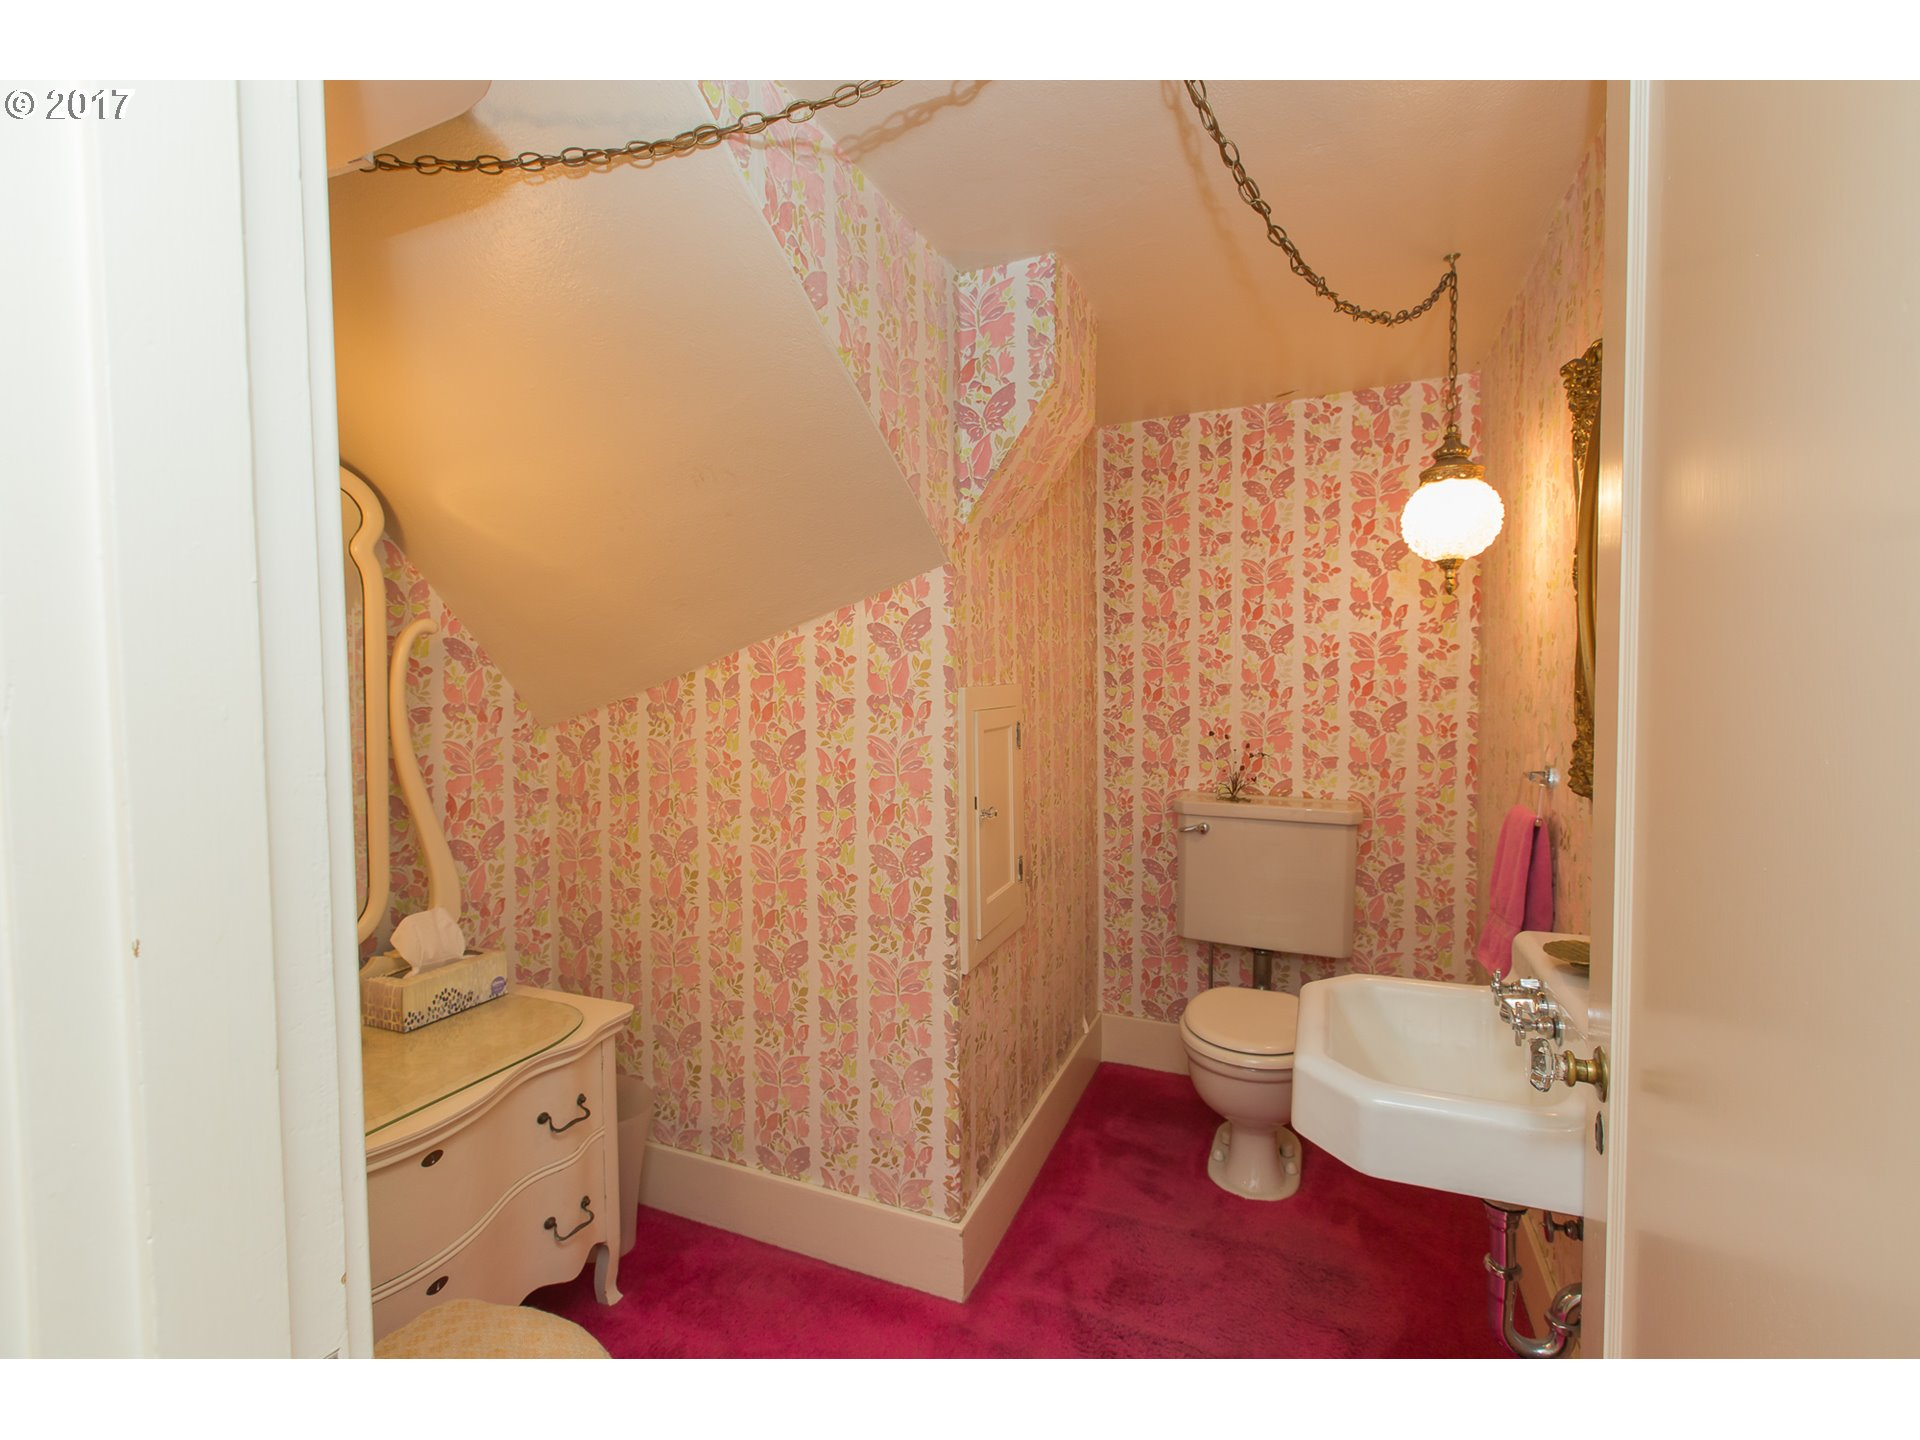 412 W 4TH ST, THE DALLES, OR 97058  Photo 14